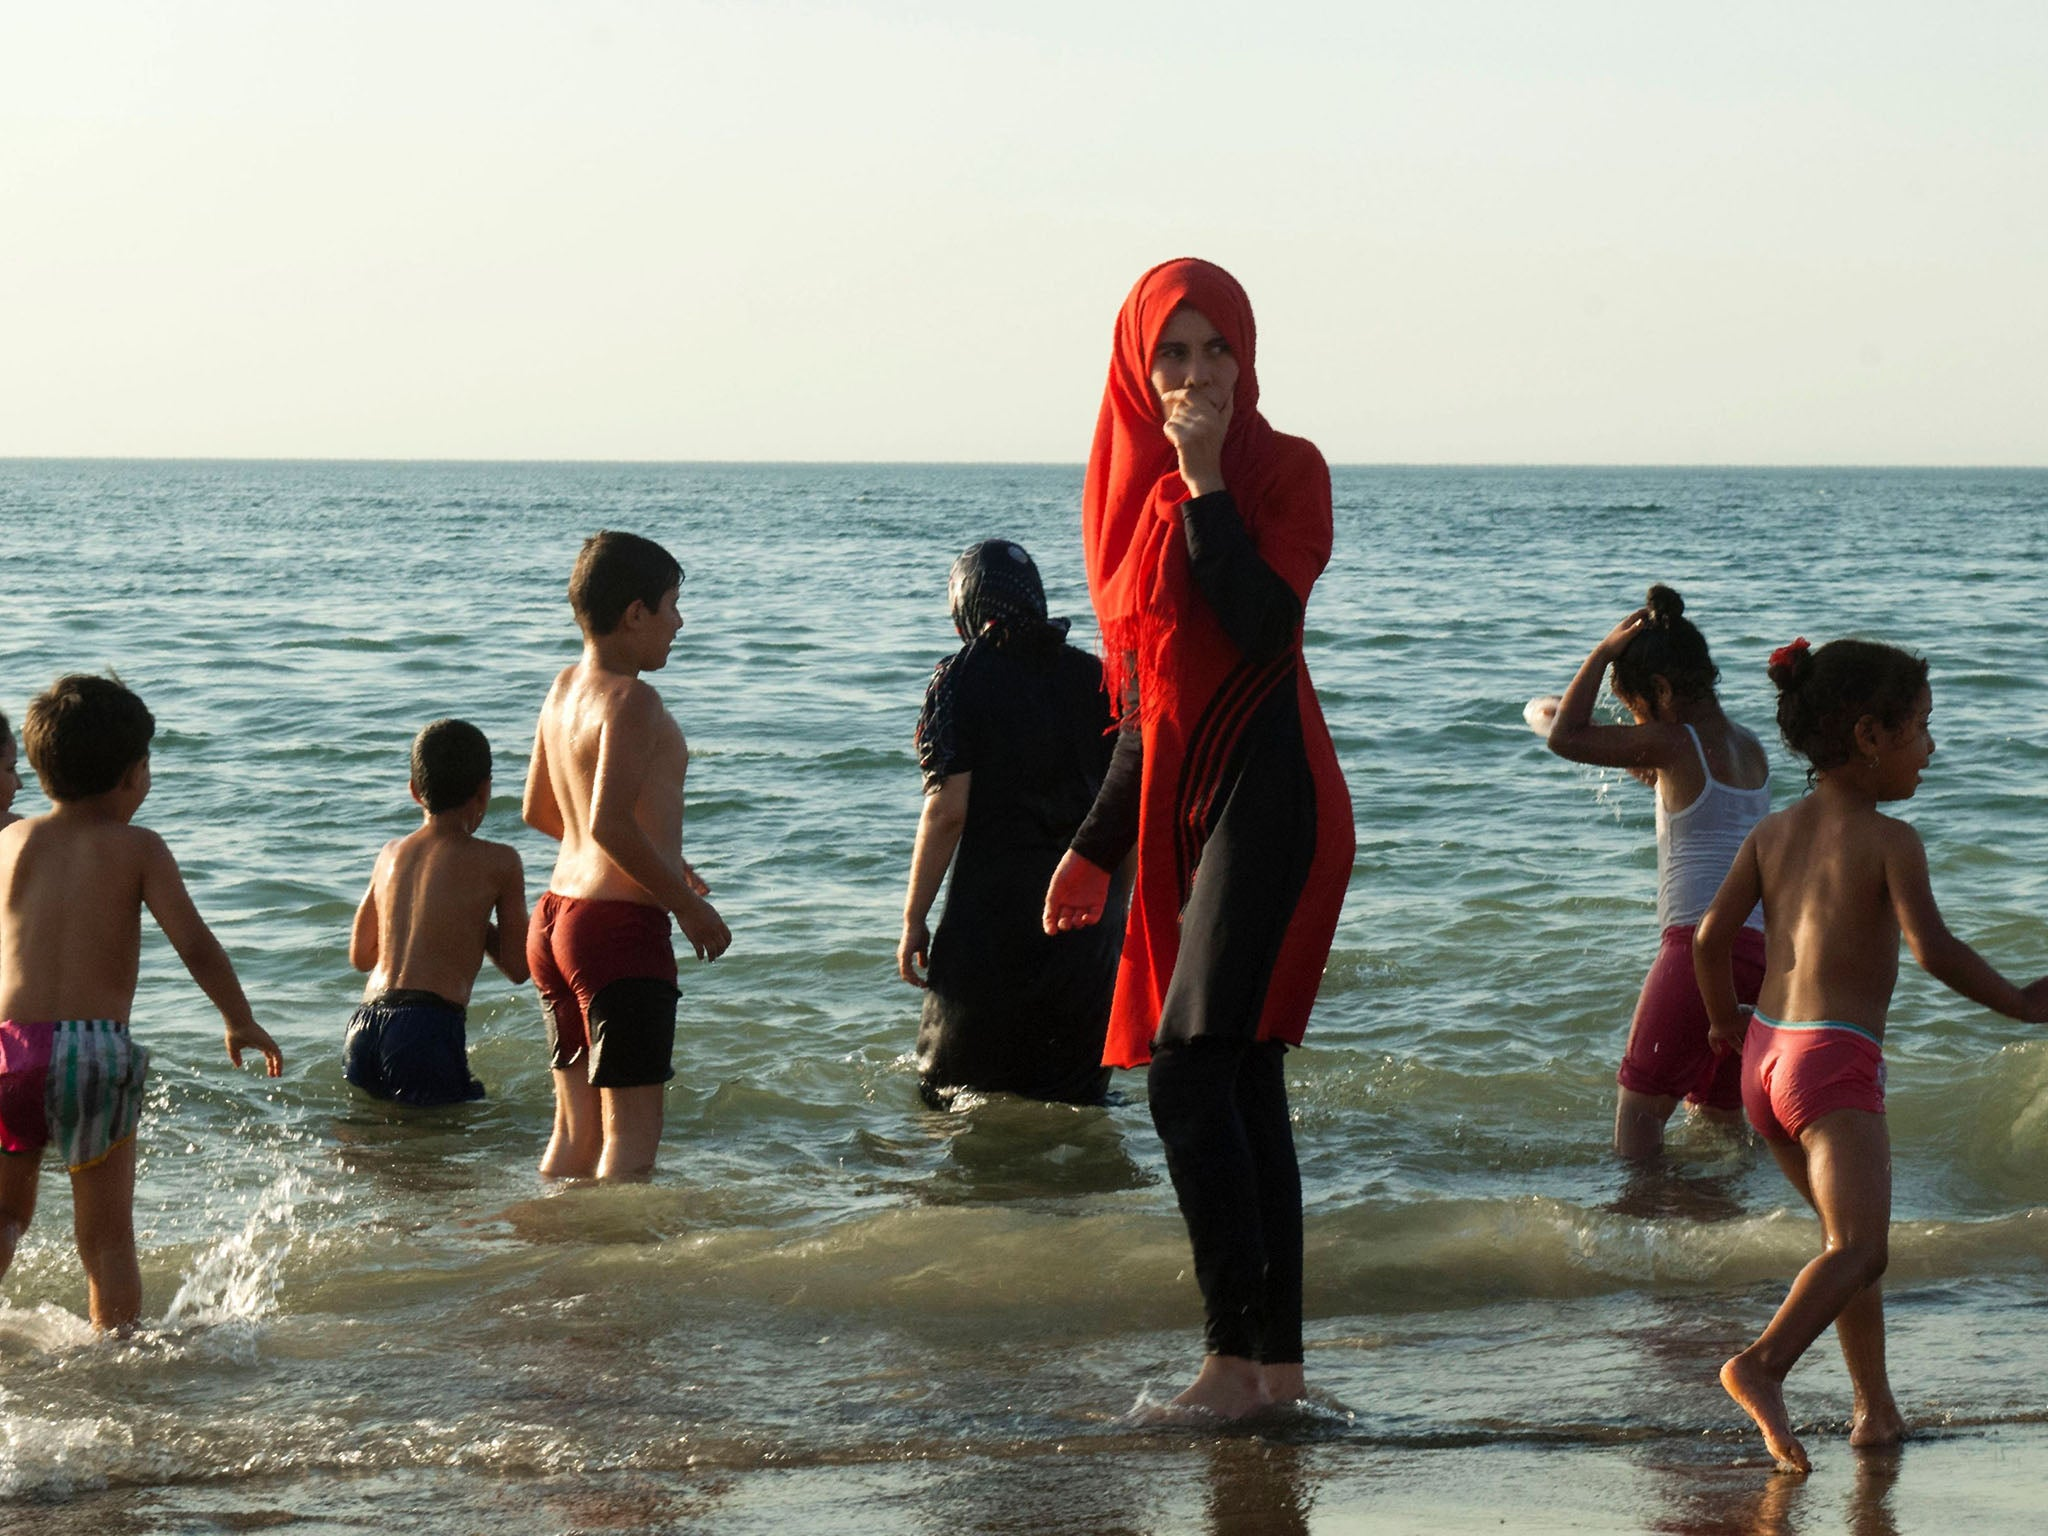 2a7e83dbff7 Burkini ban: Why is France arresting Muslim women for wearing full-body  swimwear and why are people so angry? | The Independent